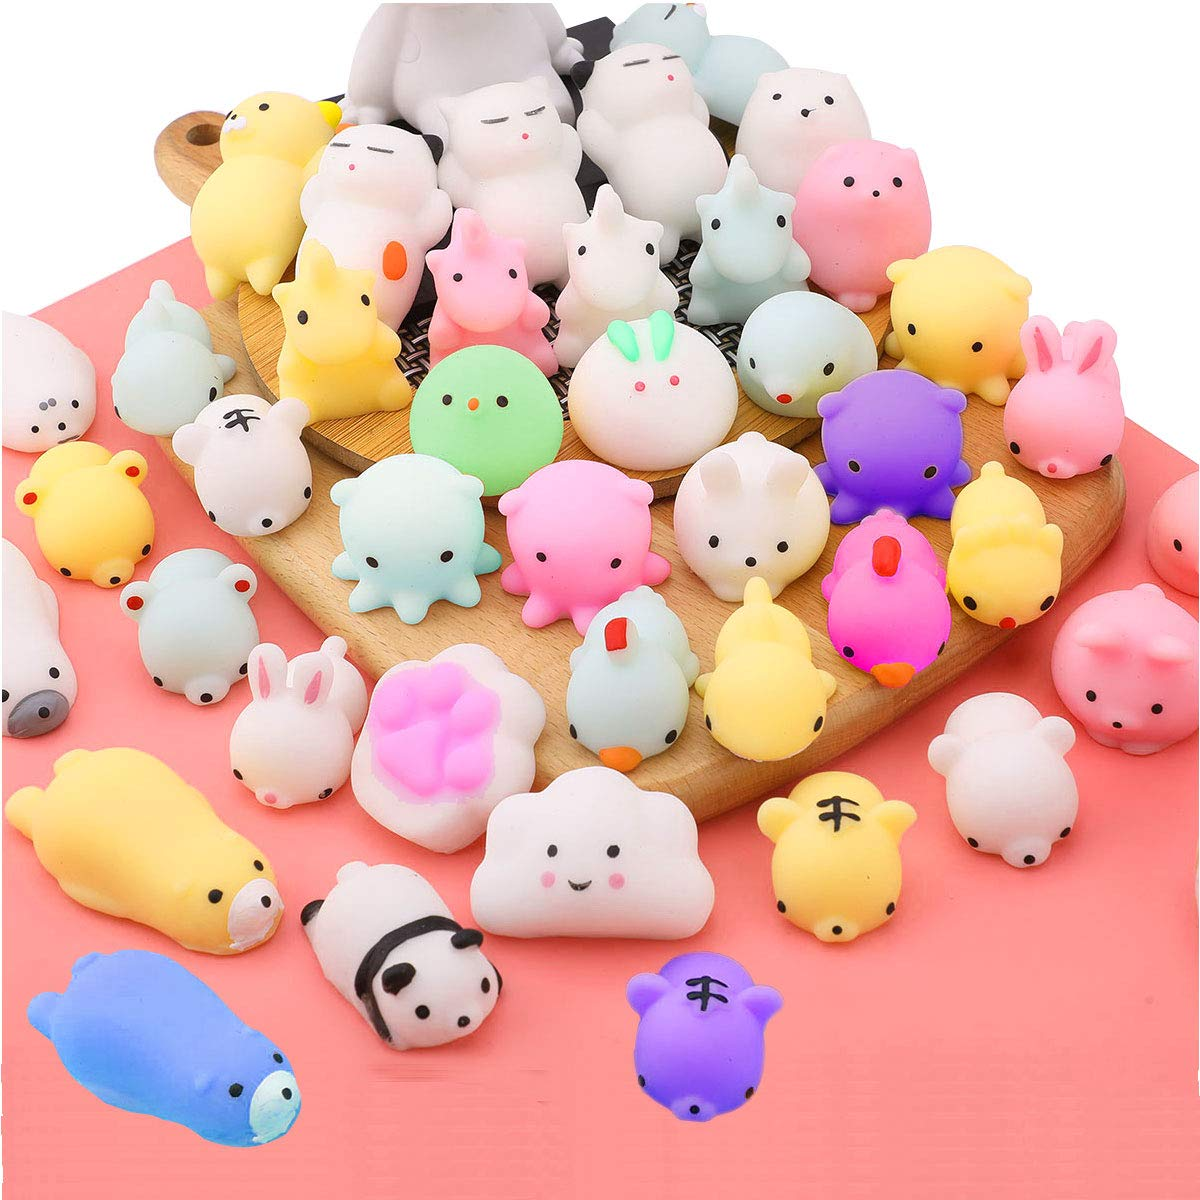 EVERICH TOY Stress Relief Toys Mochi Animals Squishy Toy Birthday Party Favors for Kids Mini Kawaii Squishies Animals Squeeze Toys by EVERICH TOY